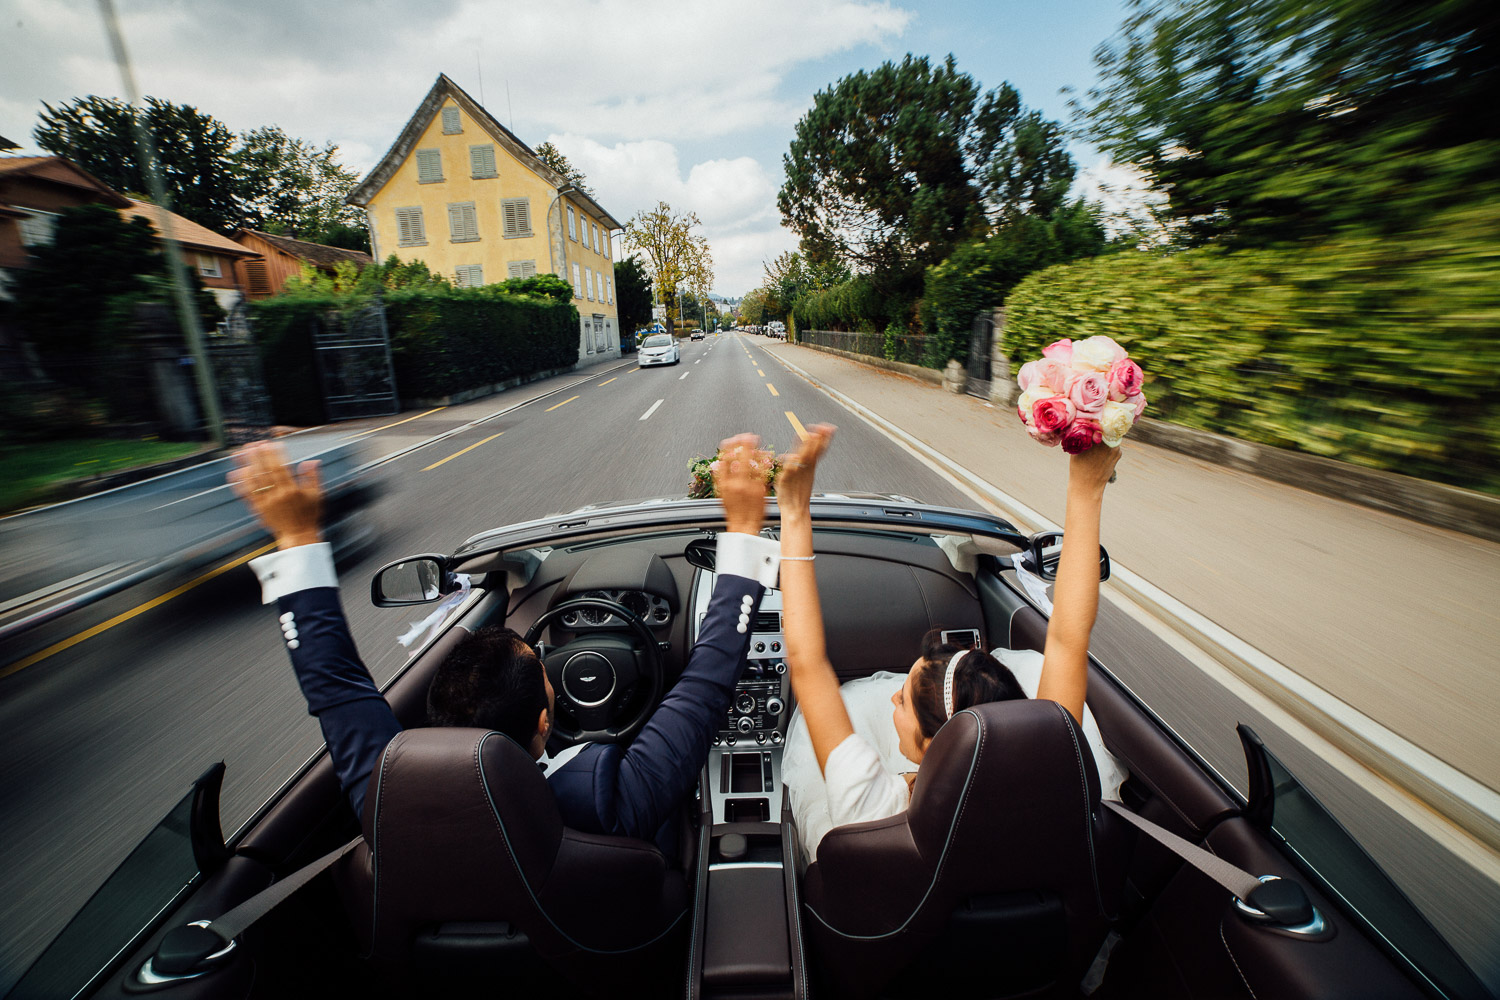 Wedding photographer in Zurich - True Love Photography